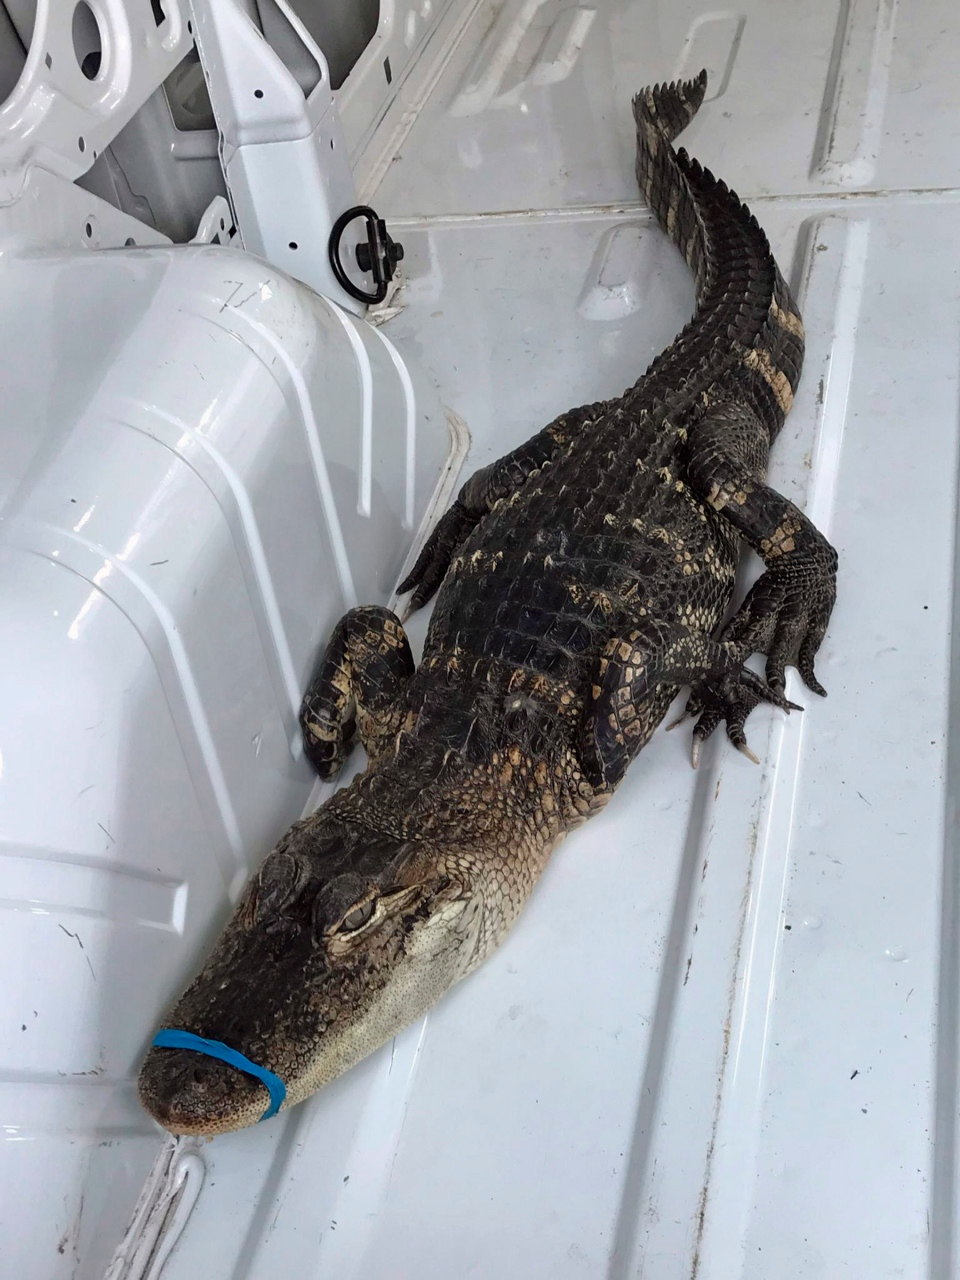 This Monday, Oct. 8, 2018, photo provided by the City of Waukegan, Ill., shows a 4-foot alligator in a van outside city hall after animal control workers helped capture it from Lake Michigan. (Sam Cunningham/City of Waukegan via AP)